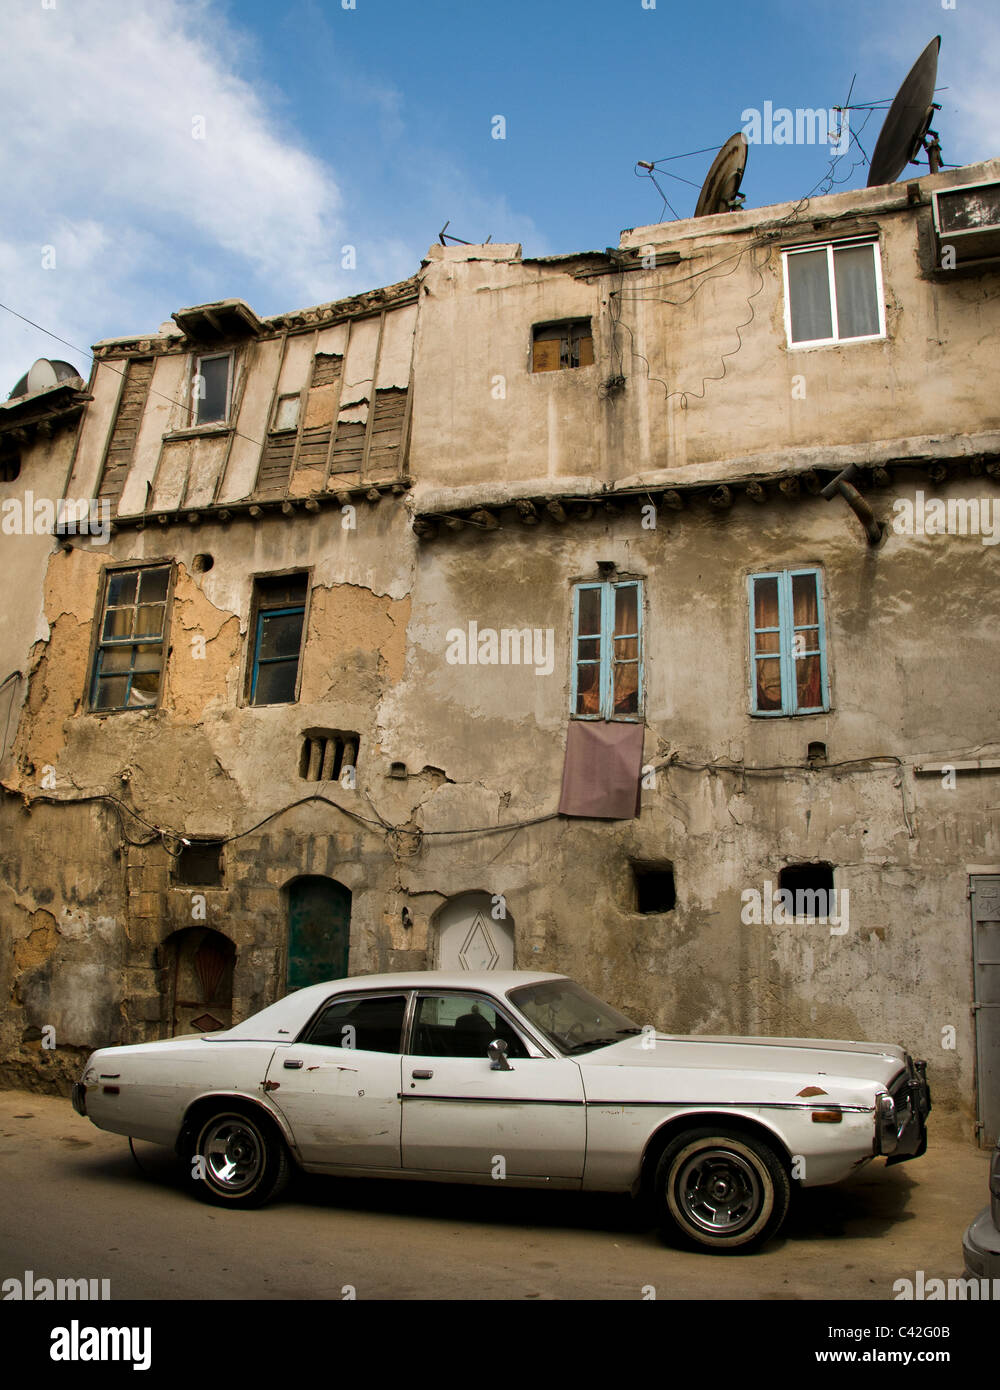 Damascus Syria Old American classic car Syria - Stock Image